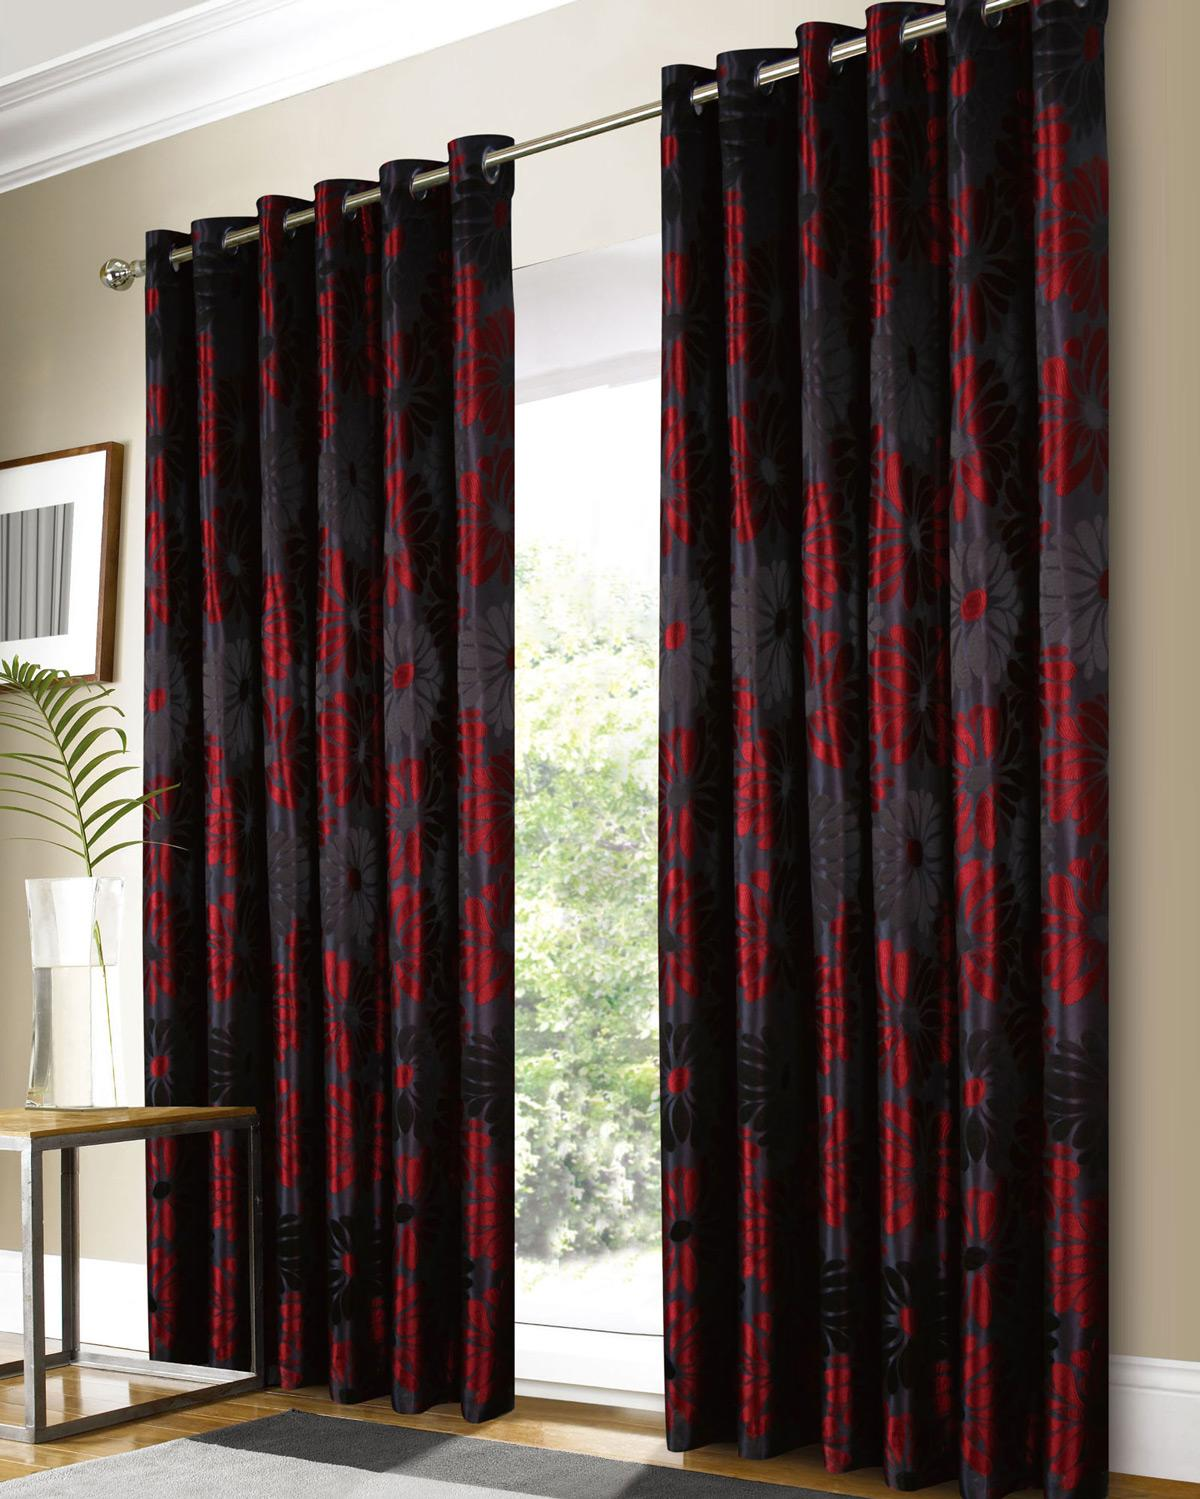 Cheap red curtains - Black Red Alaska Ready Made Eyelet Curtains Black Red Uk Delivery